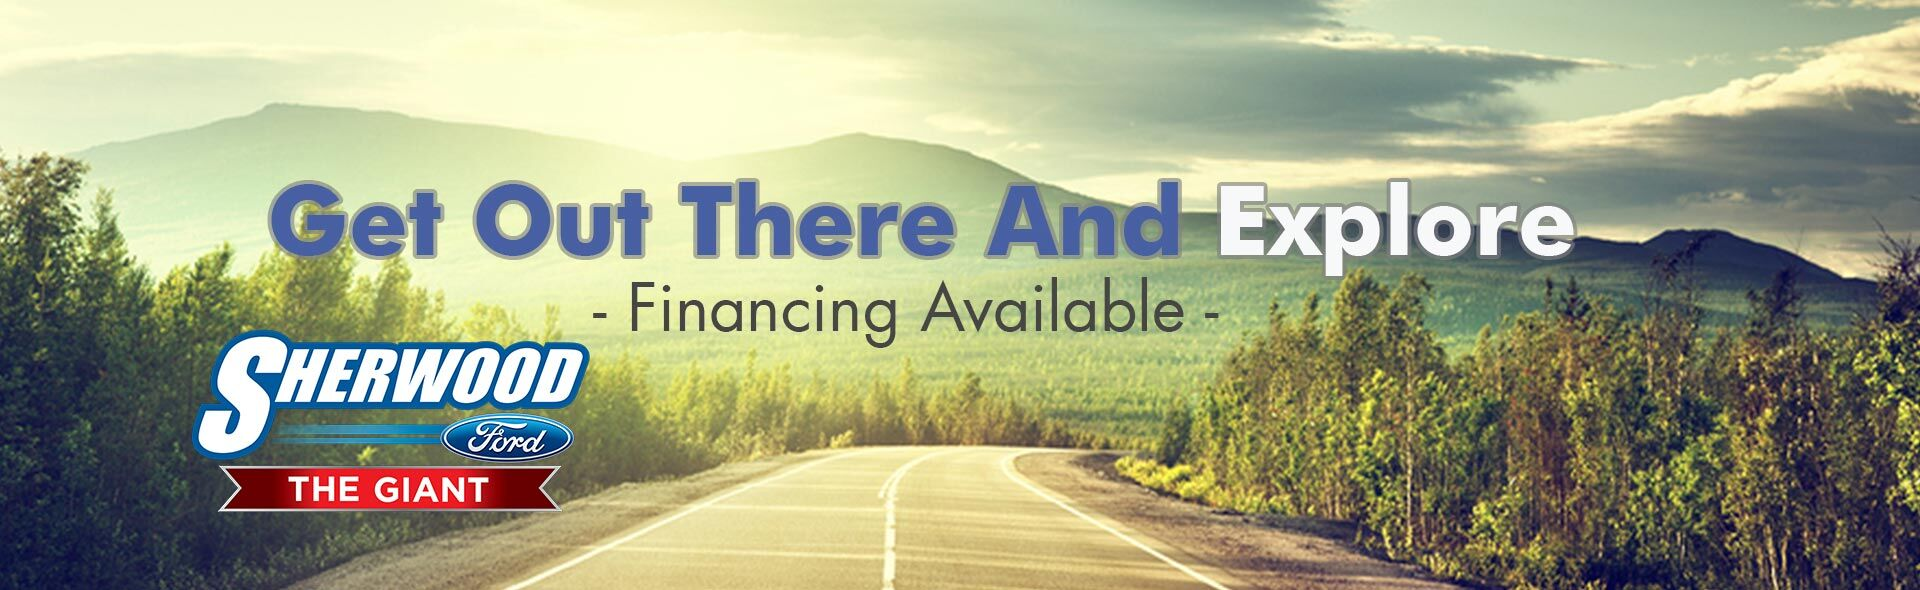 Sherwood Ford Financing